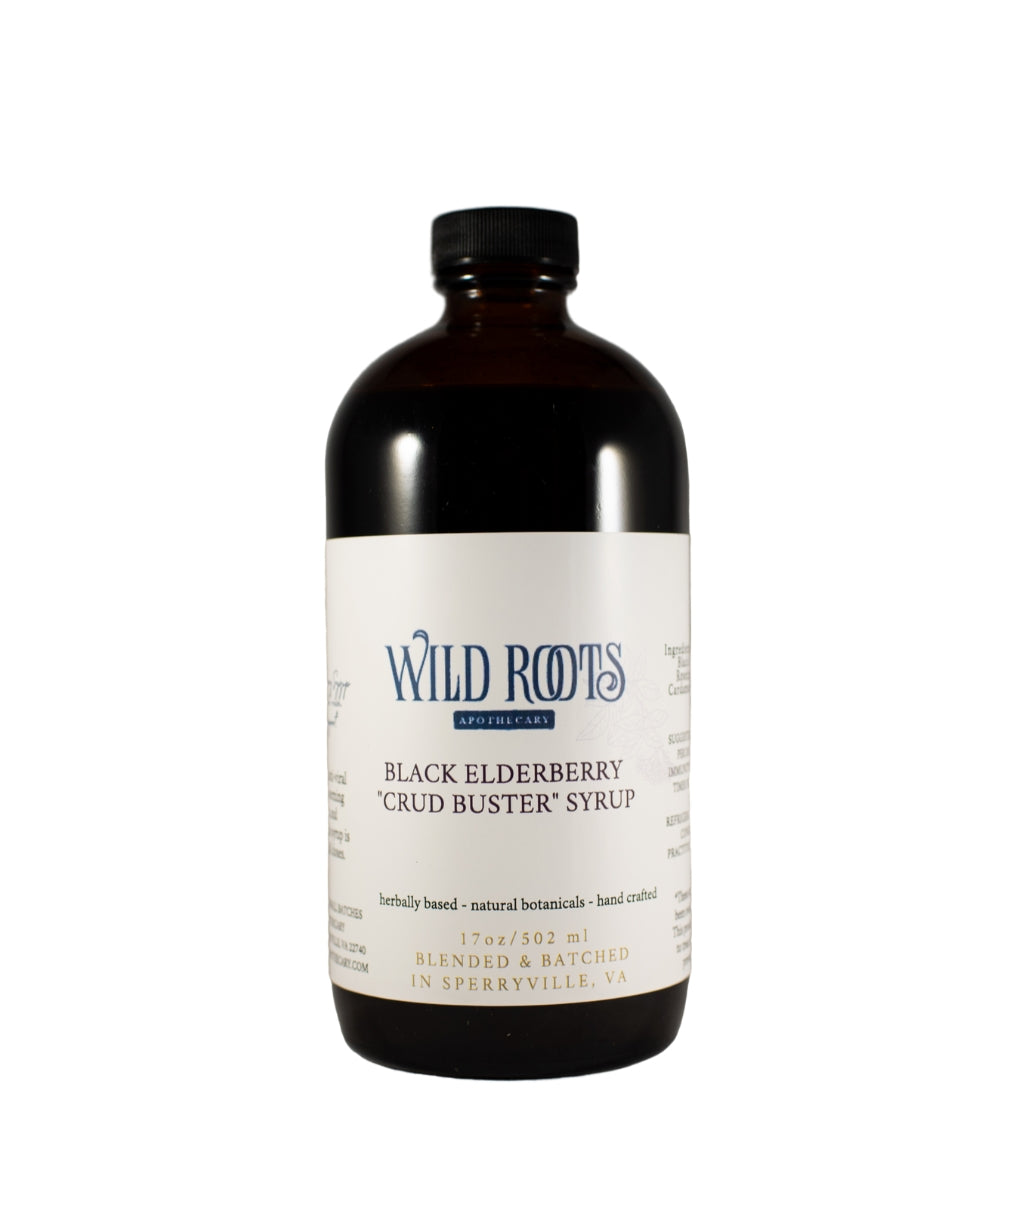 Elderberry Crud Buster Syrup